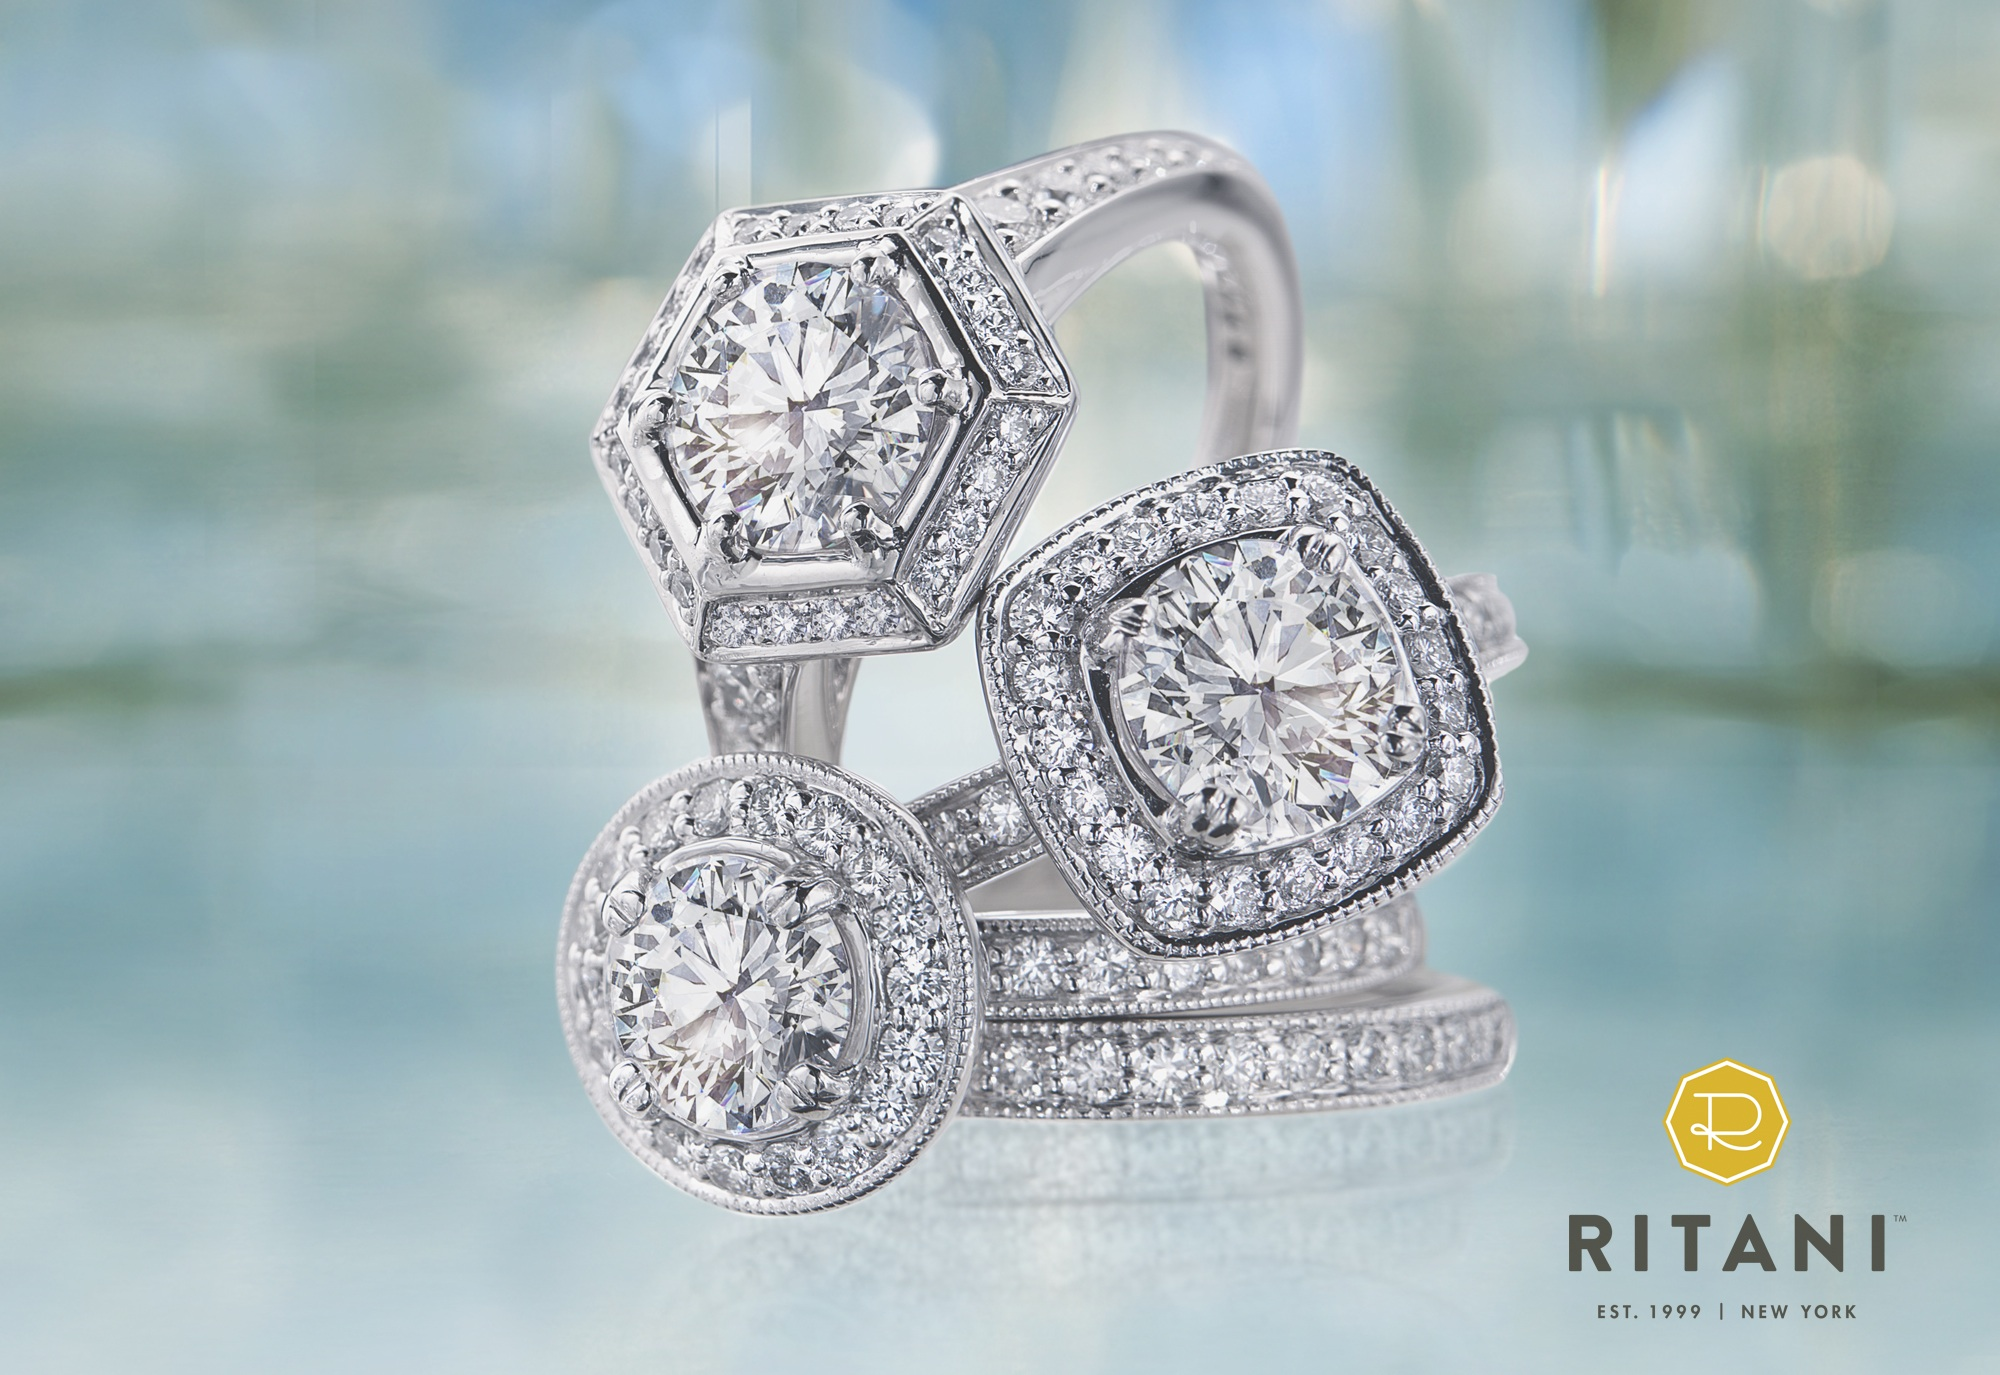 Vintage Ritani Engagement Ringsvintage Ritani Engagement Rings Adding A  Milgrain Finish Can Turn Even A Traditional Or Modern Setting Into A Ring  That